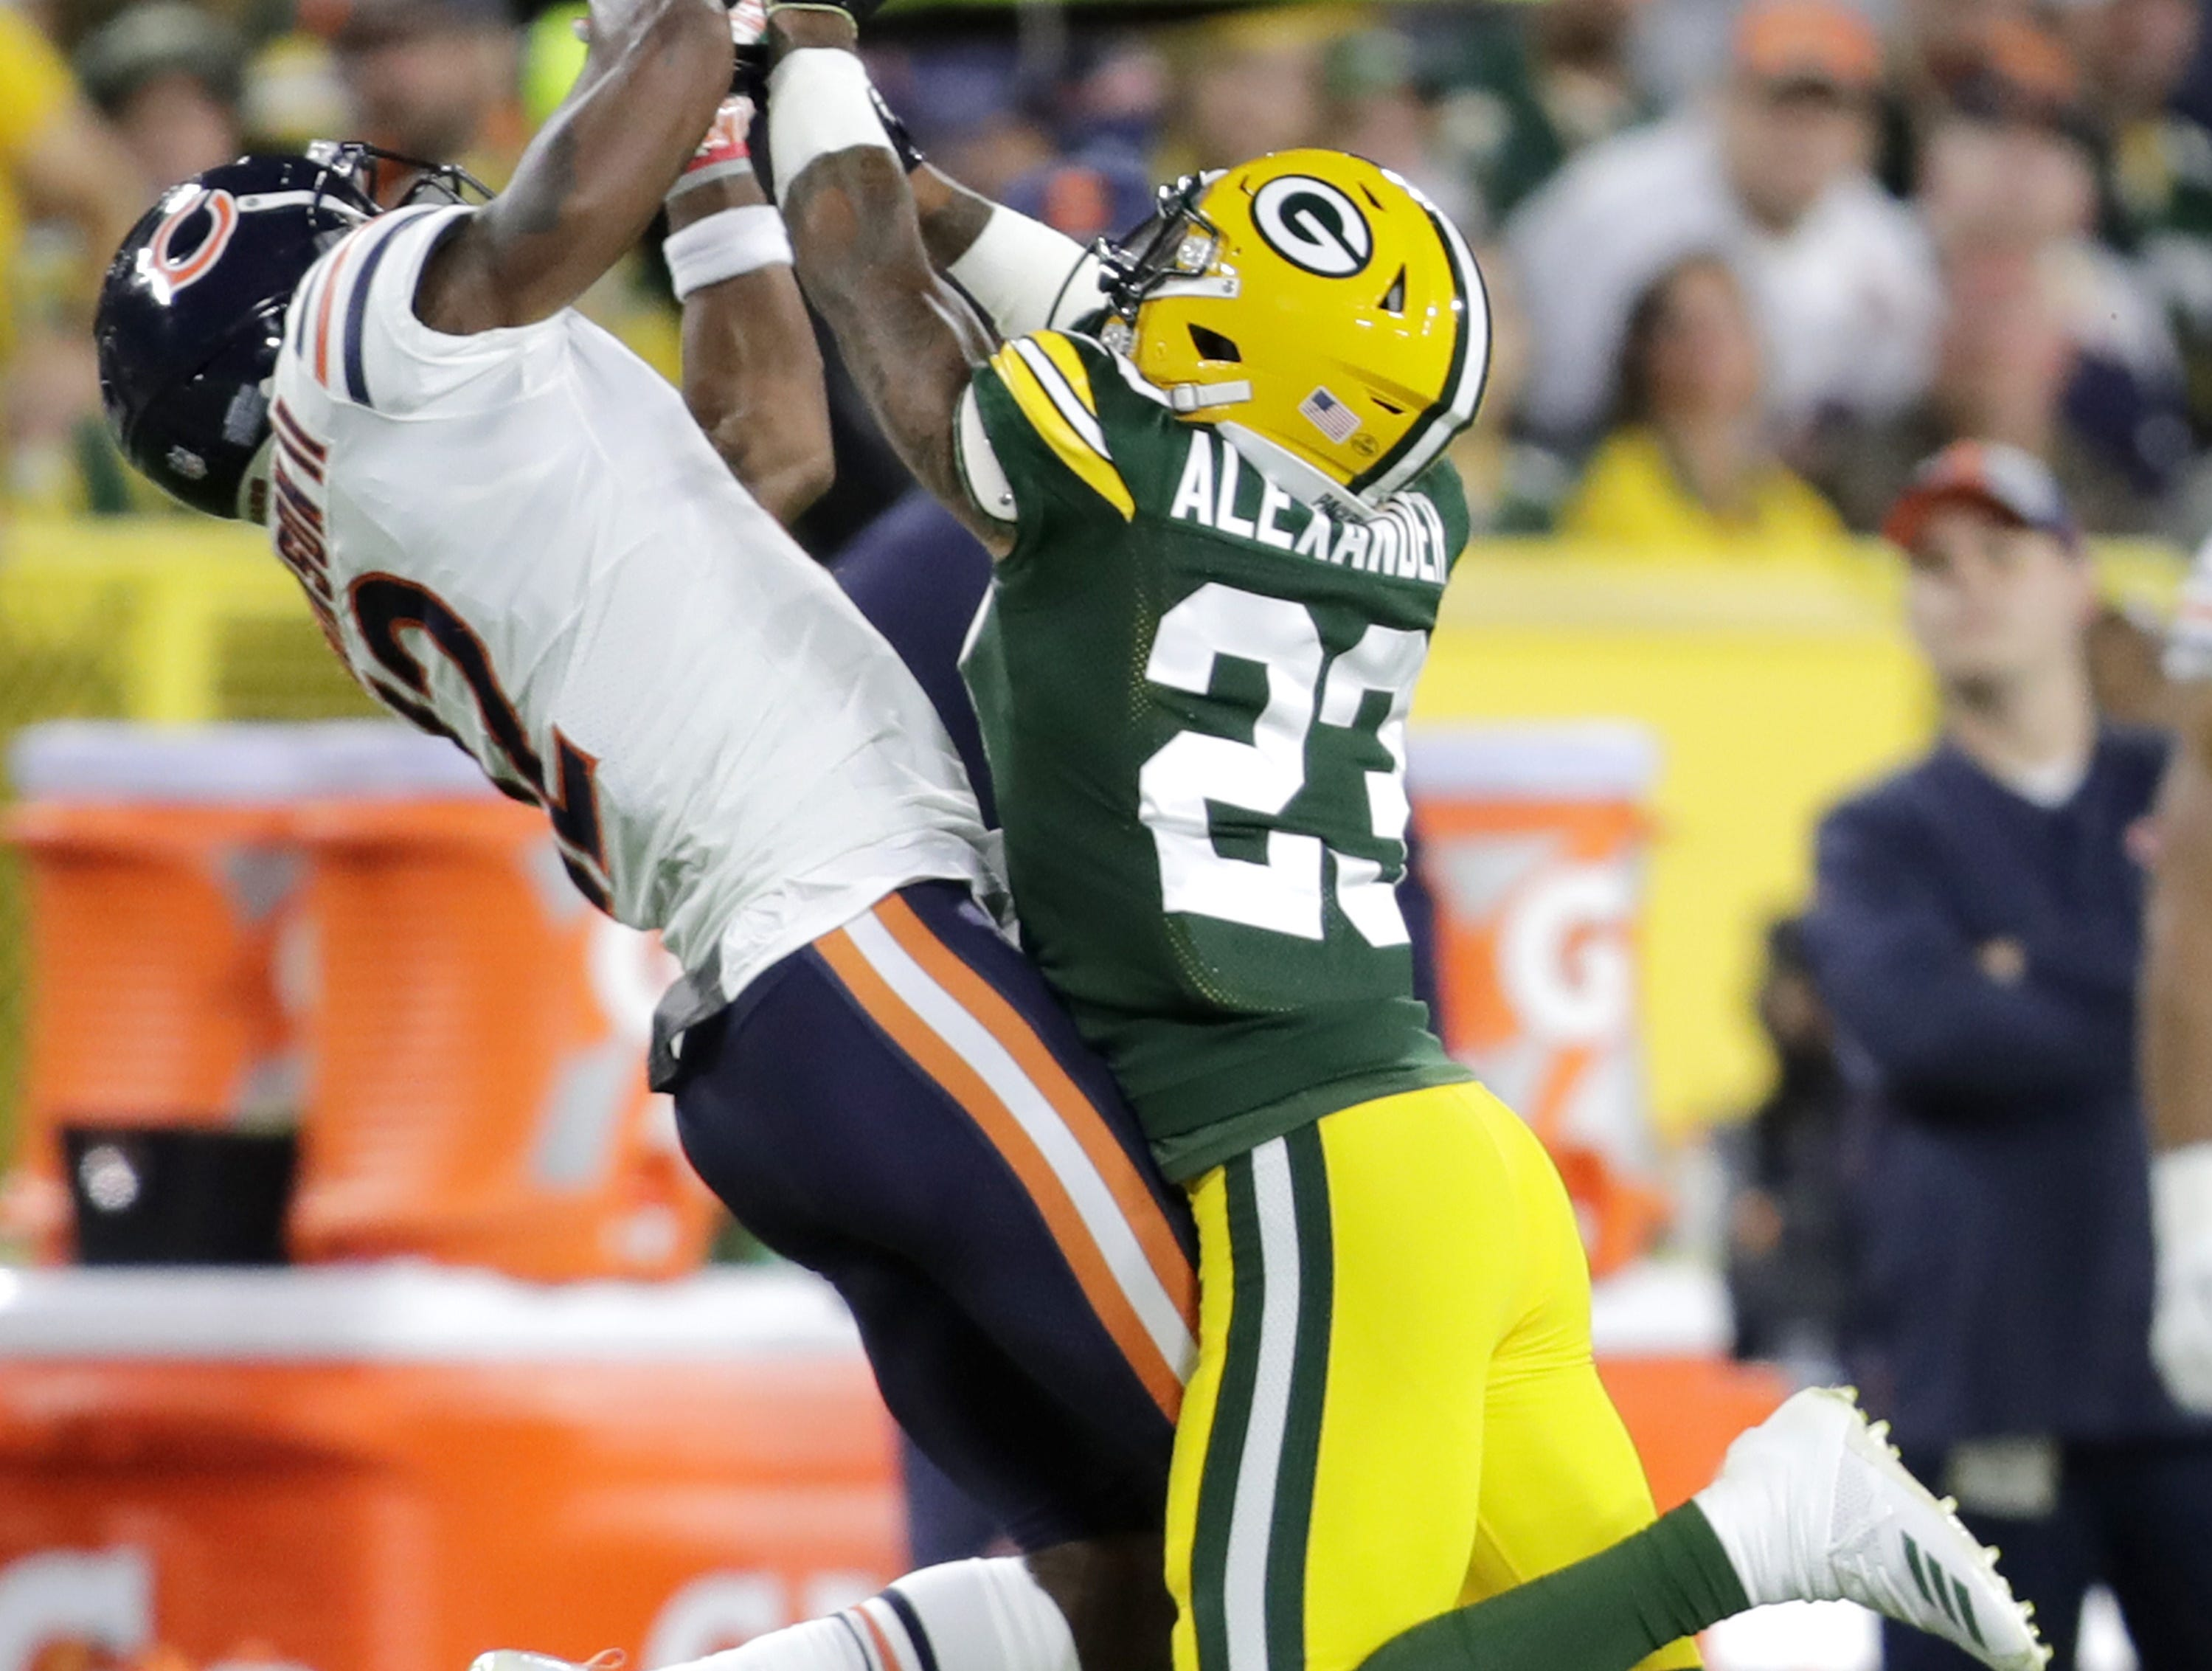 Green Bay Packers' Jaire Alexander against Chicago Bears' Allen Robinson in the season opener on Sunday, September 9, 2018, at Lambeau Field in Green Bay, Wis.